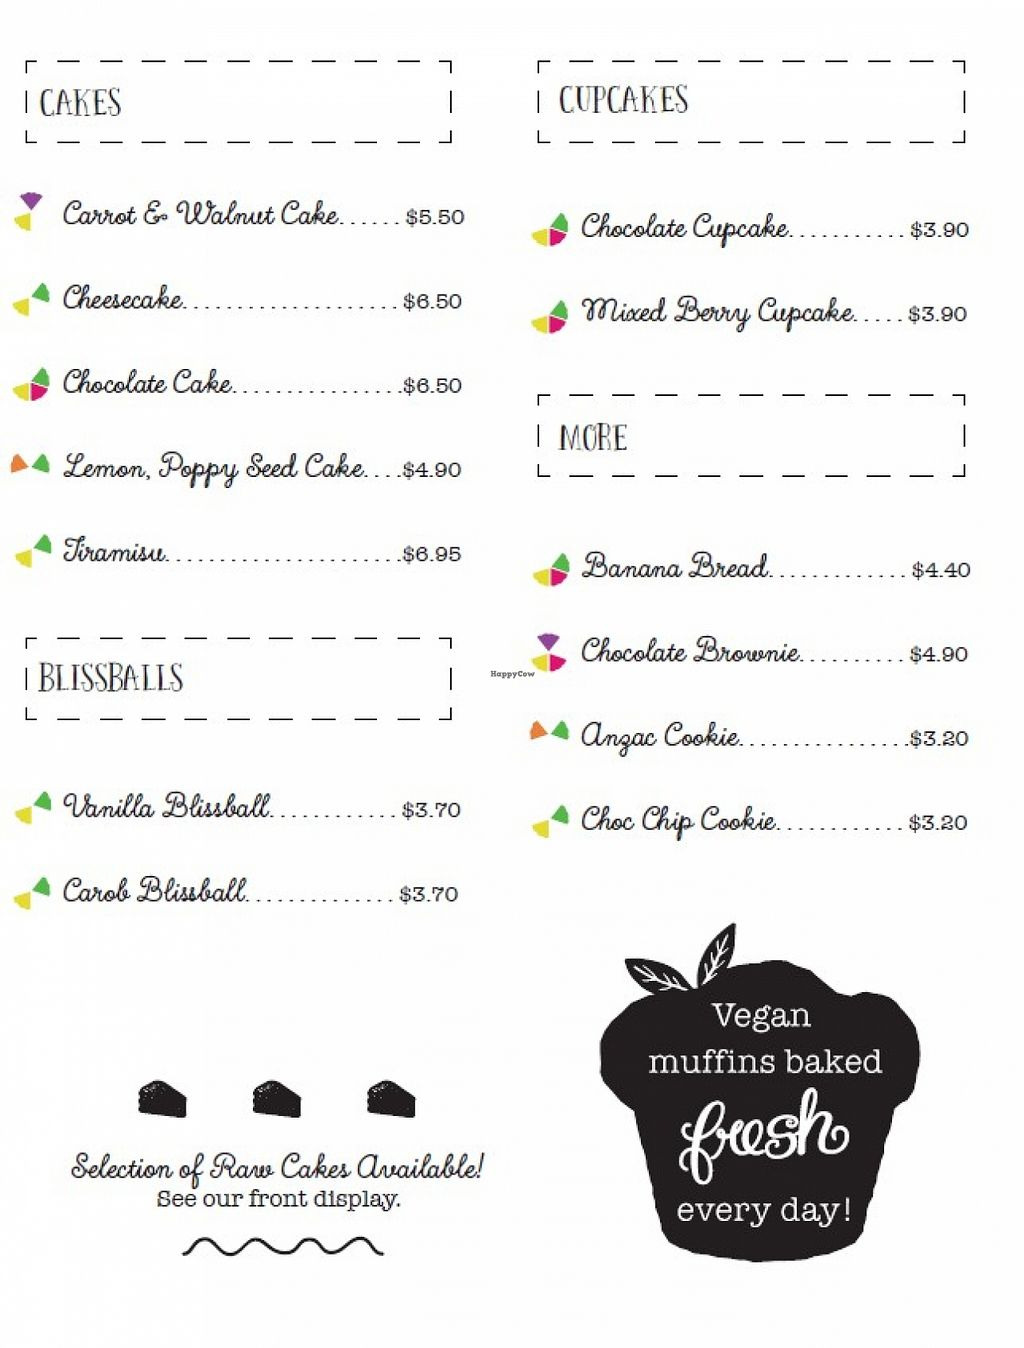 """Photo of Healthy Planet Cafe  by <a href=""""/members/profile/verbosity"""">verbosity</a> <br/>Menu - page 4 <br/> November 2, 2015  - <a href='/contact/abuse/image/58008/123589'>Report</a>"""